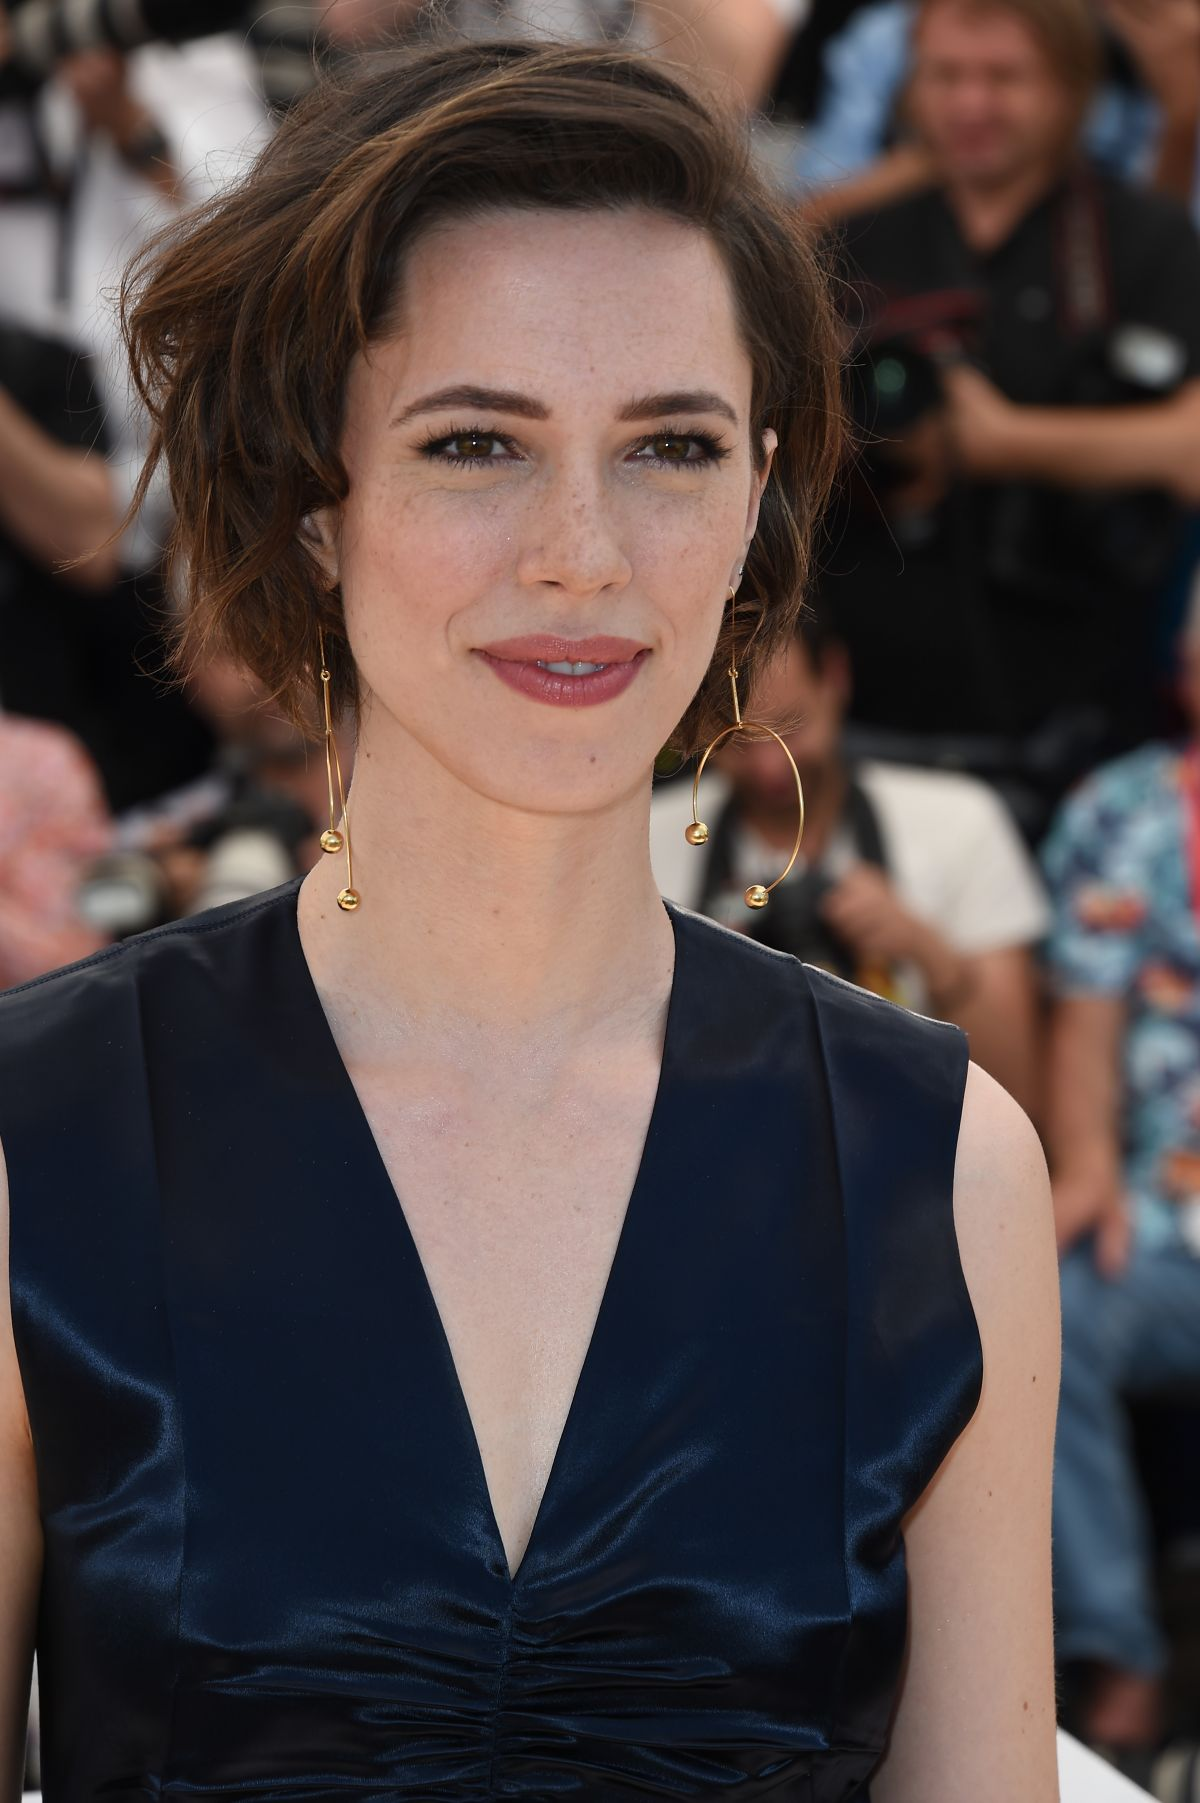 Rebecca Hall At The BFG photocall In Cannes - Celebzz